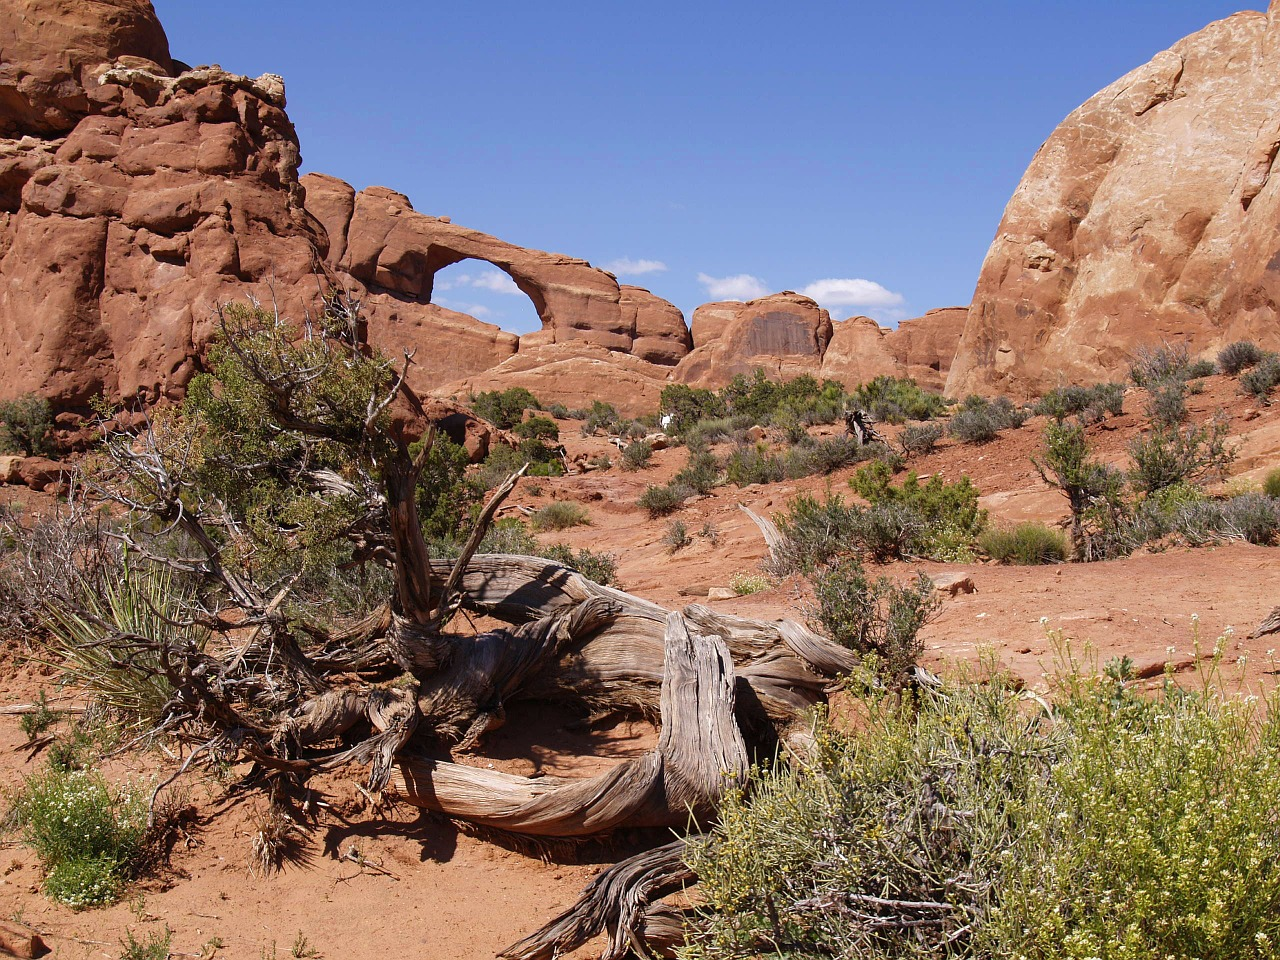 wilson arch,arches national park,utah,usa,southwest usa,moab,rock,arches,natural bridge,landscape,nature,beautiful,free pictures, free photos, free images, royalty free, free illustrations, public domain